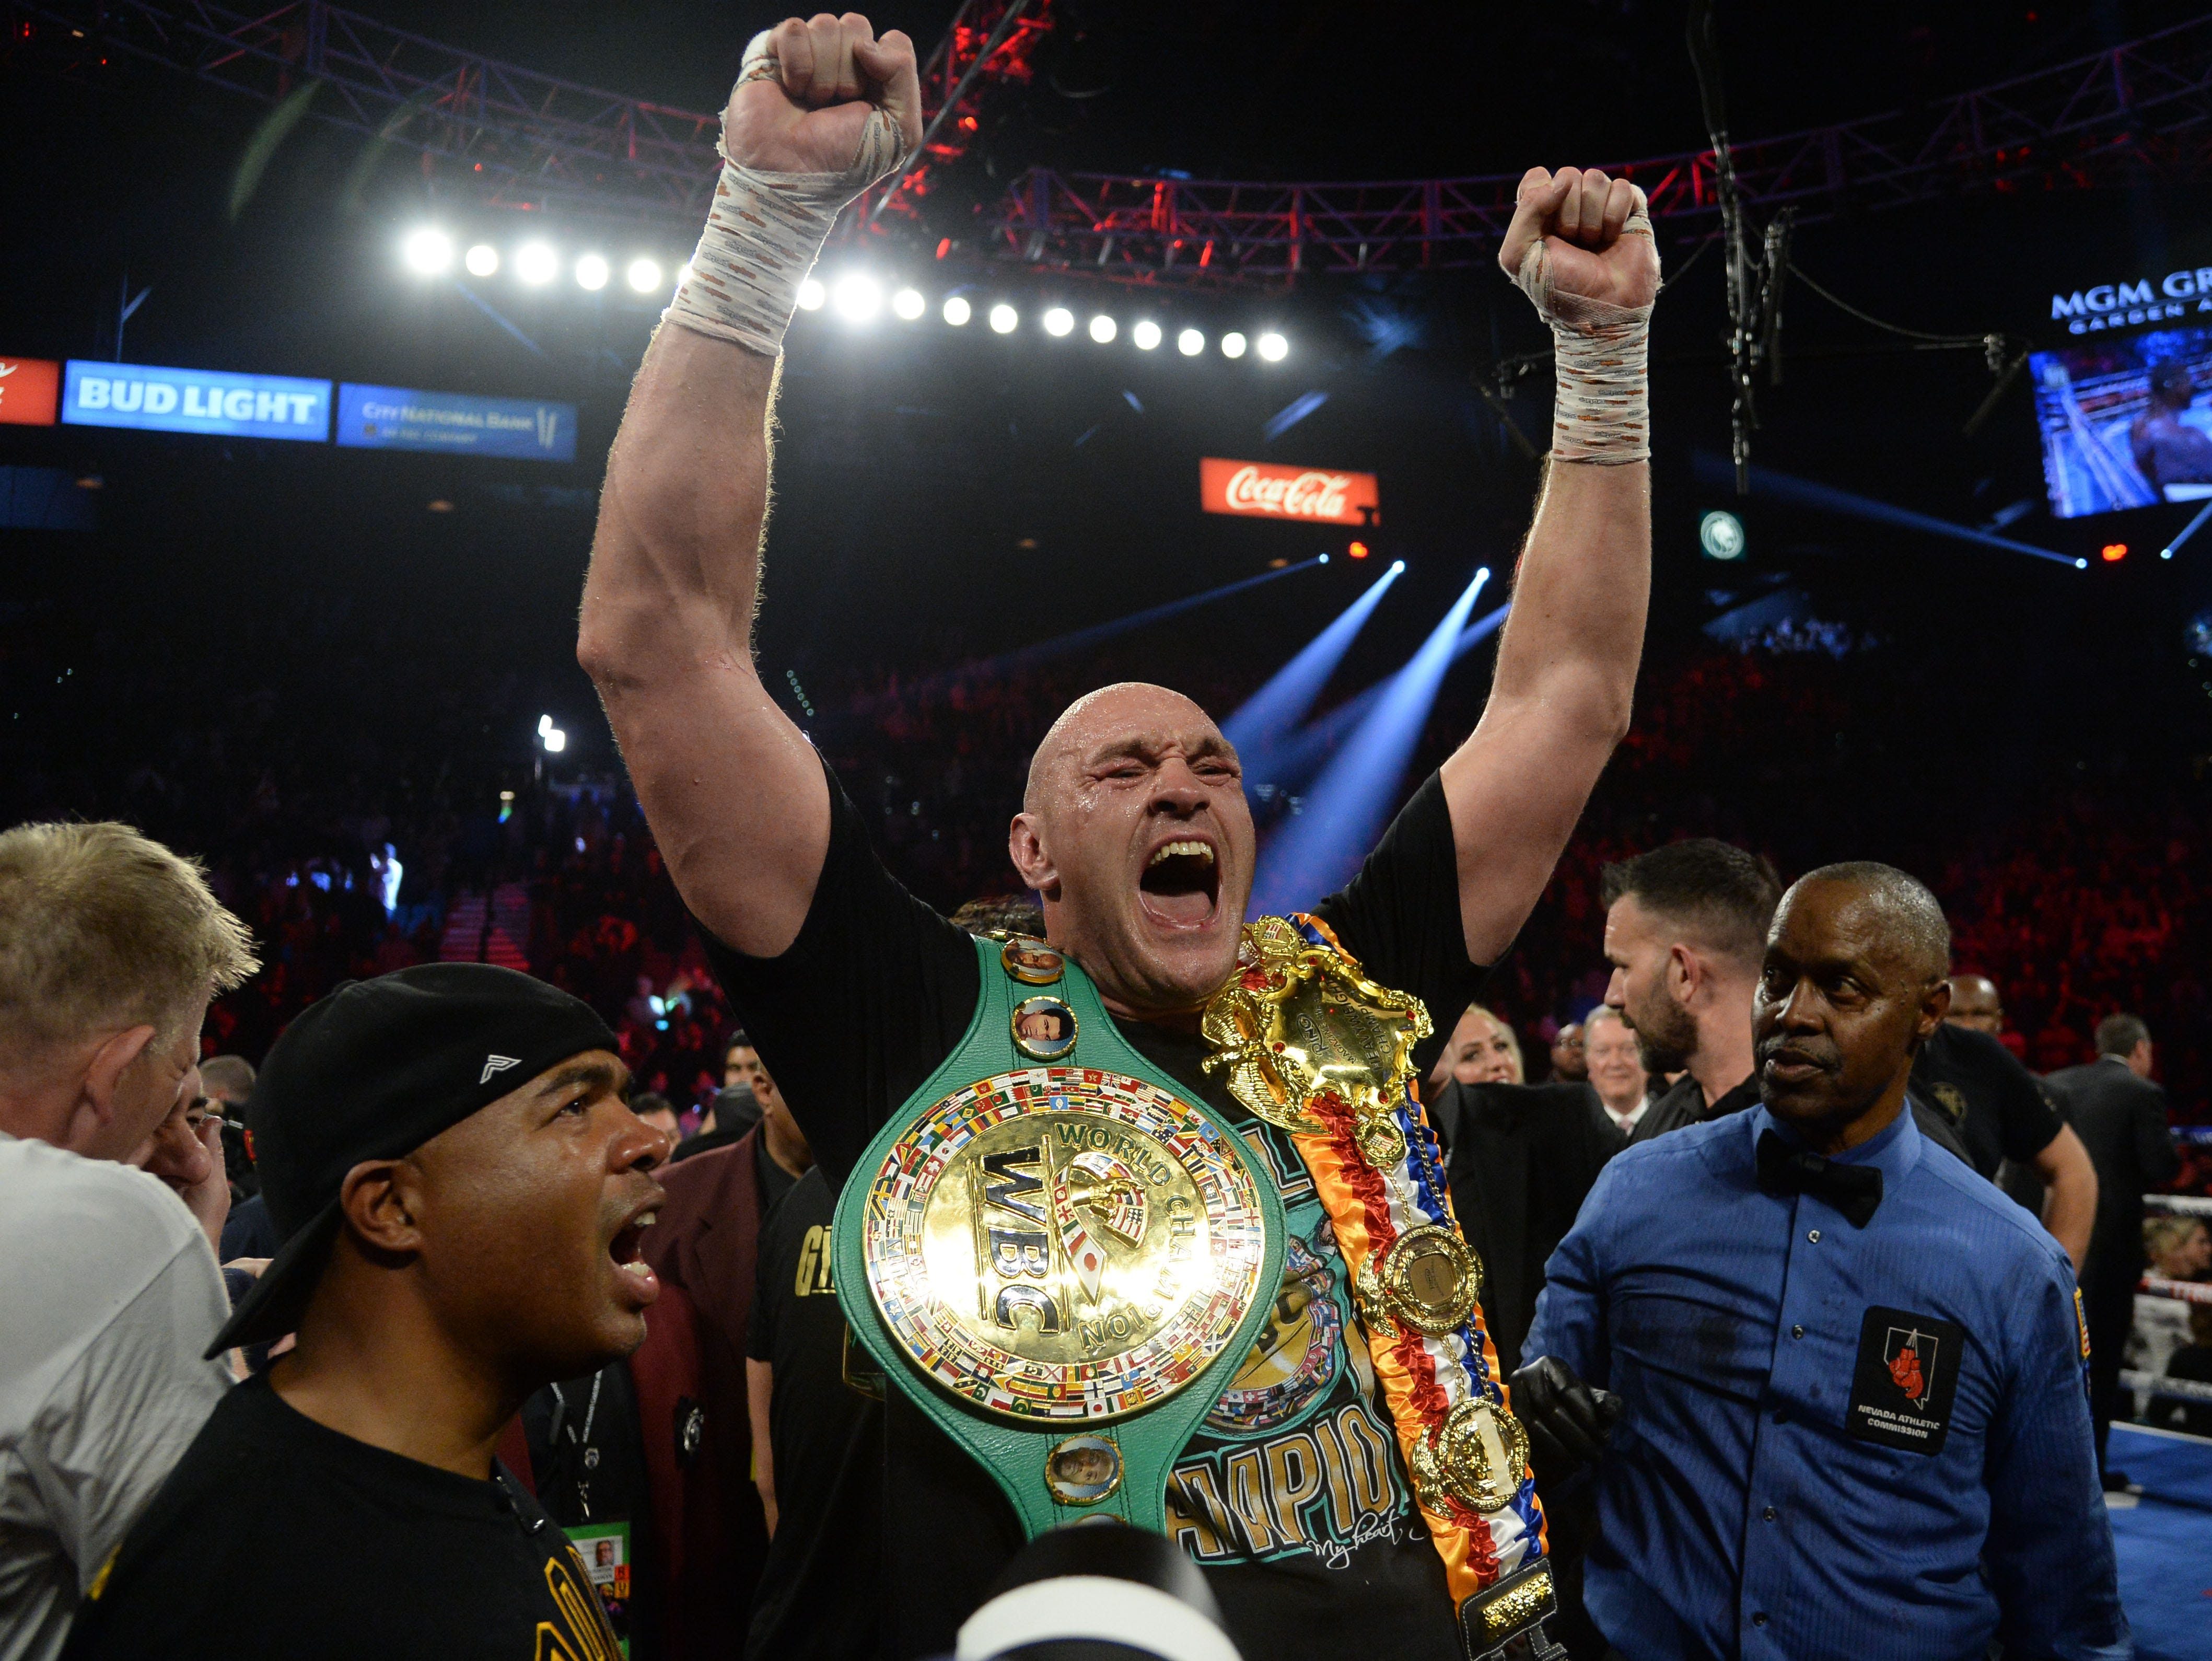 Tyson Fury says he received call to fight Mike Tyson in exhibition bout: 'Hell yeah'